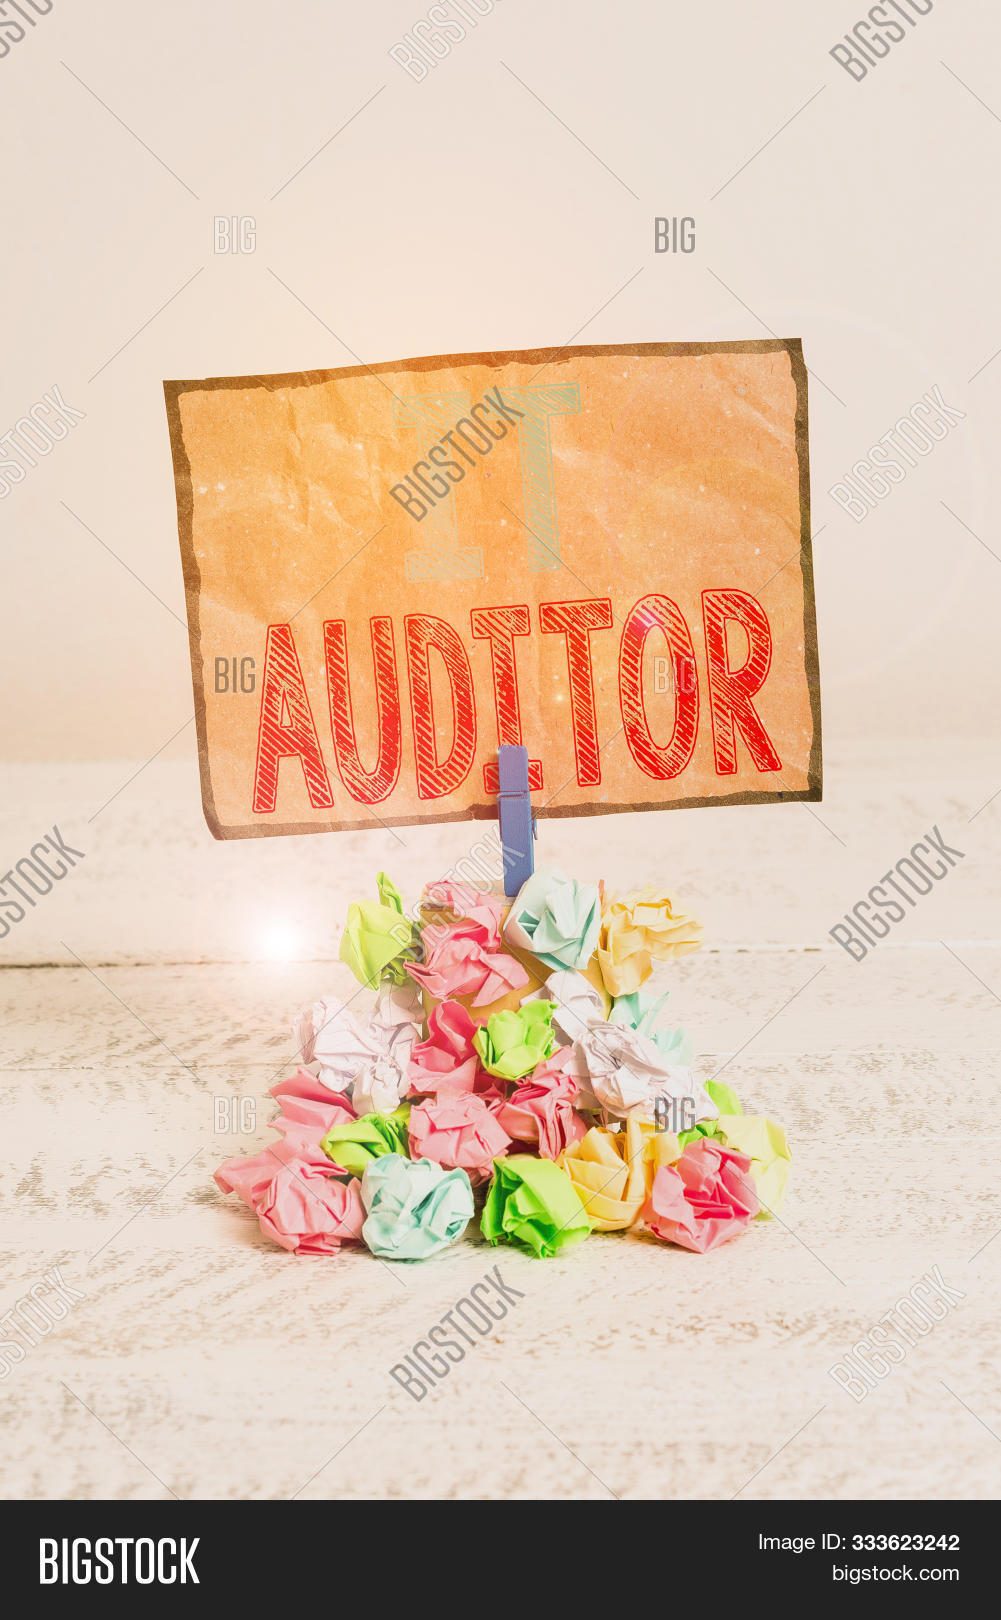 FASB,accordance,accountant,accounting,accounts,analyze,annual,assessment,audit,auditor,balance,bookkeeper,business,calculate,company,compliance,comptroller,concept,control,cost,evaluate,examination,external,financial,governing,independent,internal,law,legal,practices,process,profit,project,quality,records,report,representation,review,risk,shareholder,standard,statements,statutory,tax,transaction,validation